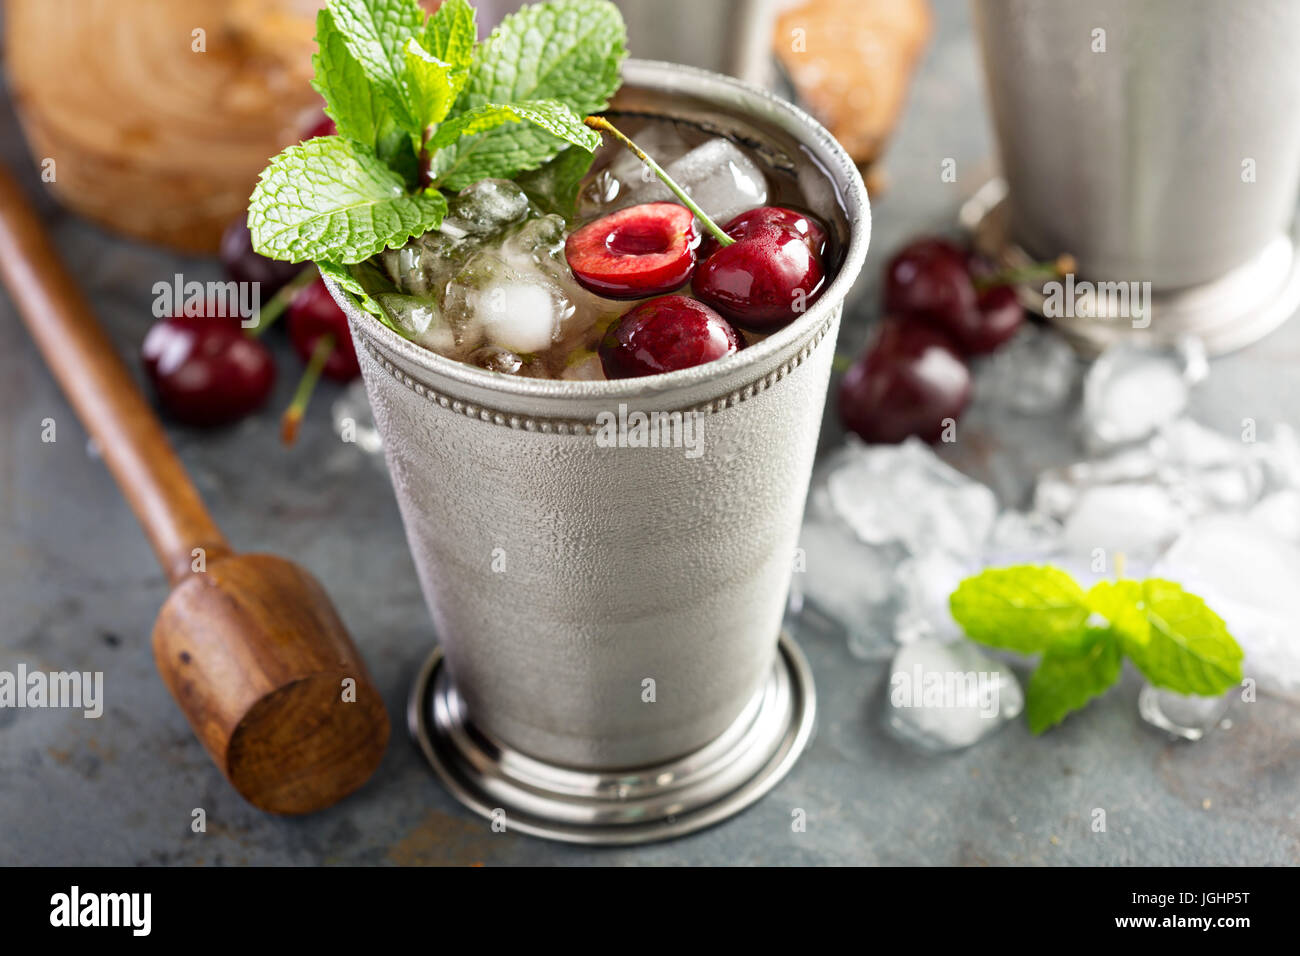 Summer mint julep cocktail - Stock Image